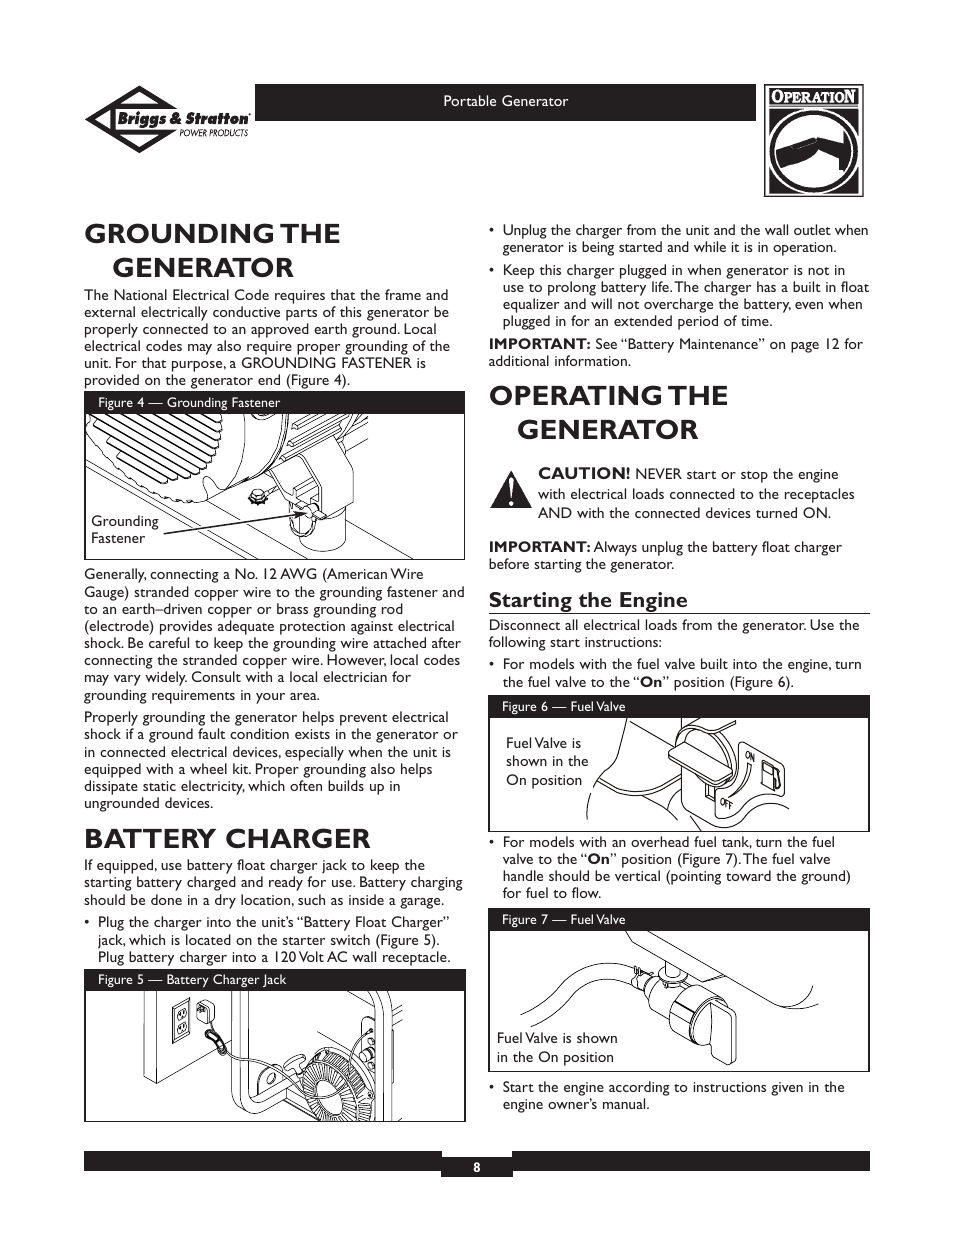 Grounding the generator, Battery charger, Operating the generator